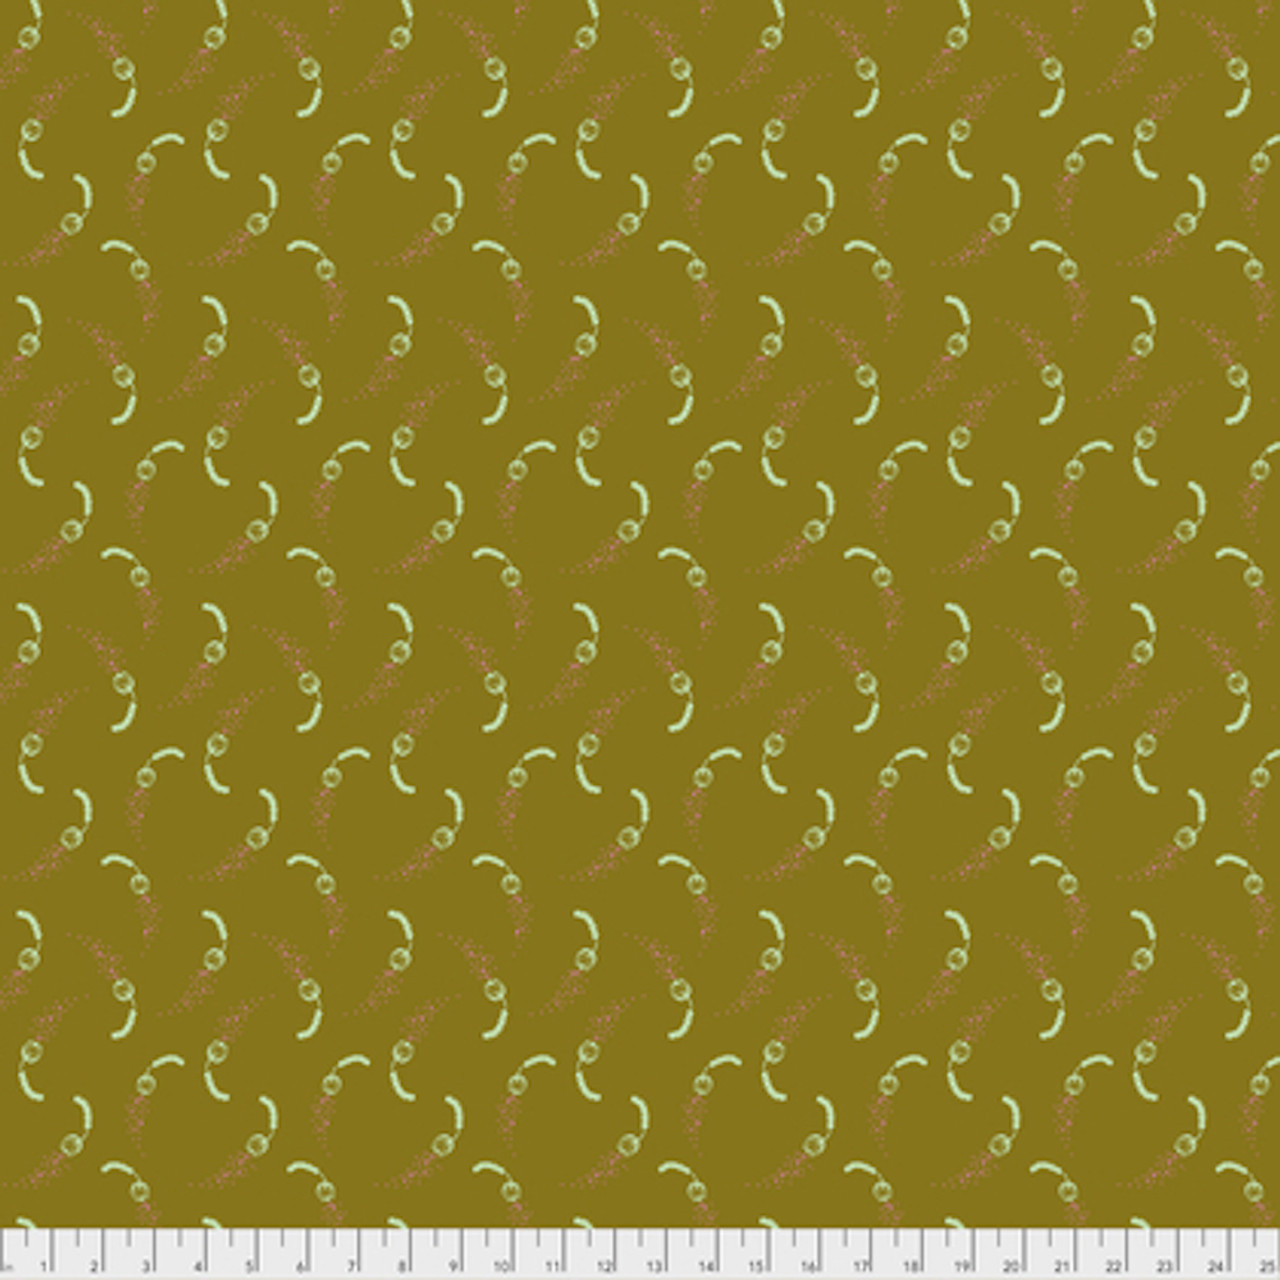 1 yd ANNA MARIA HORNER PASSIONFLOWER Quilt Fabric